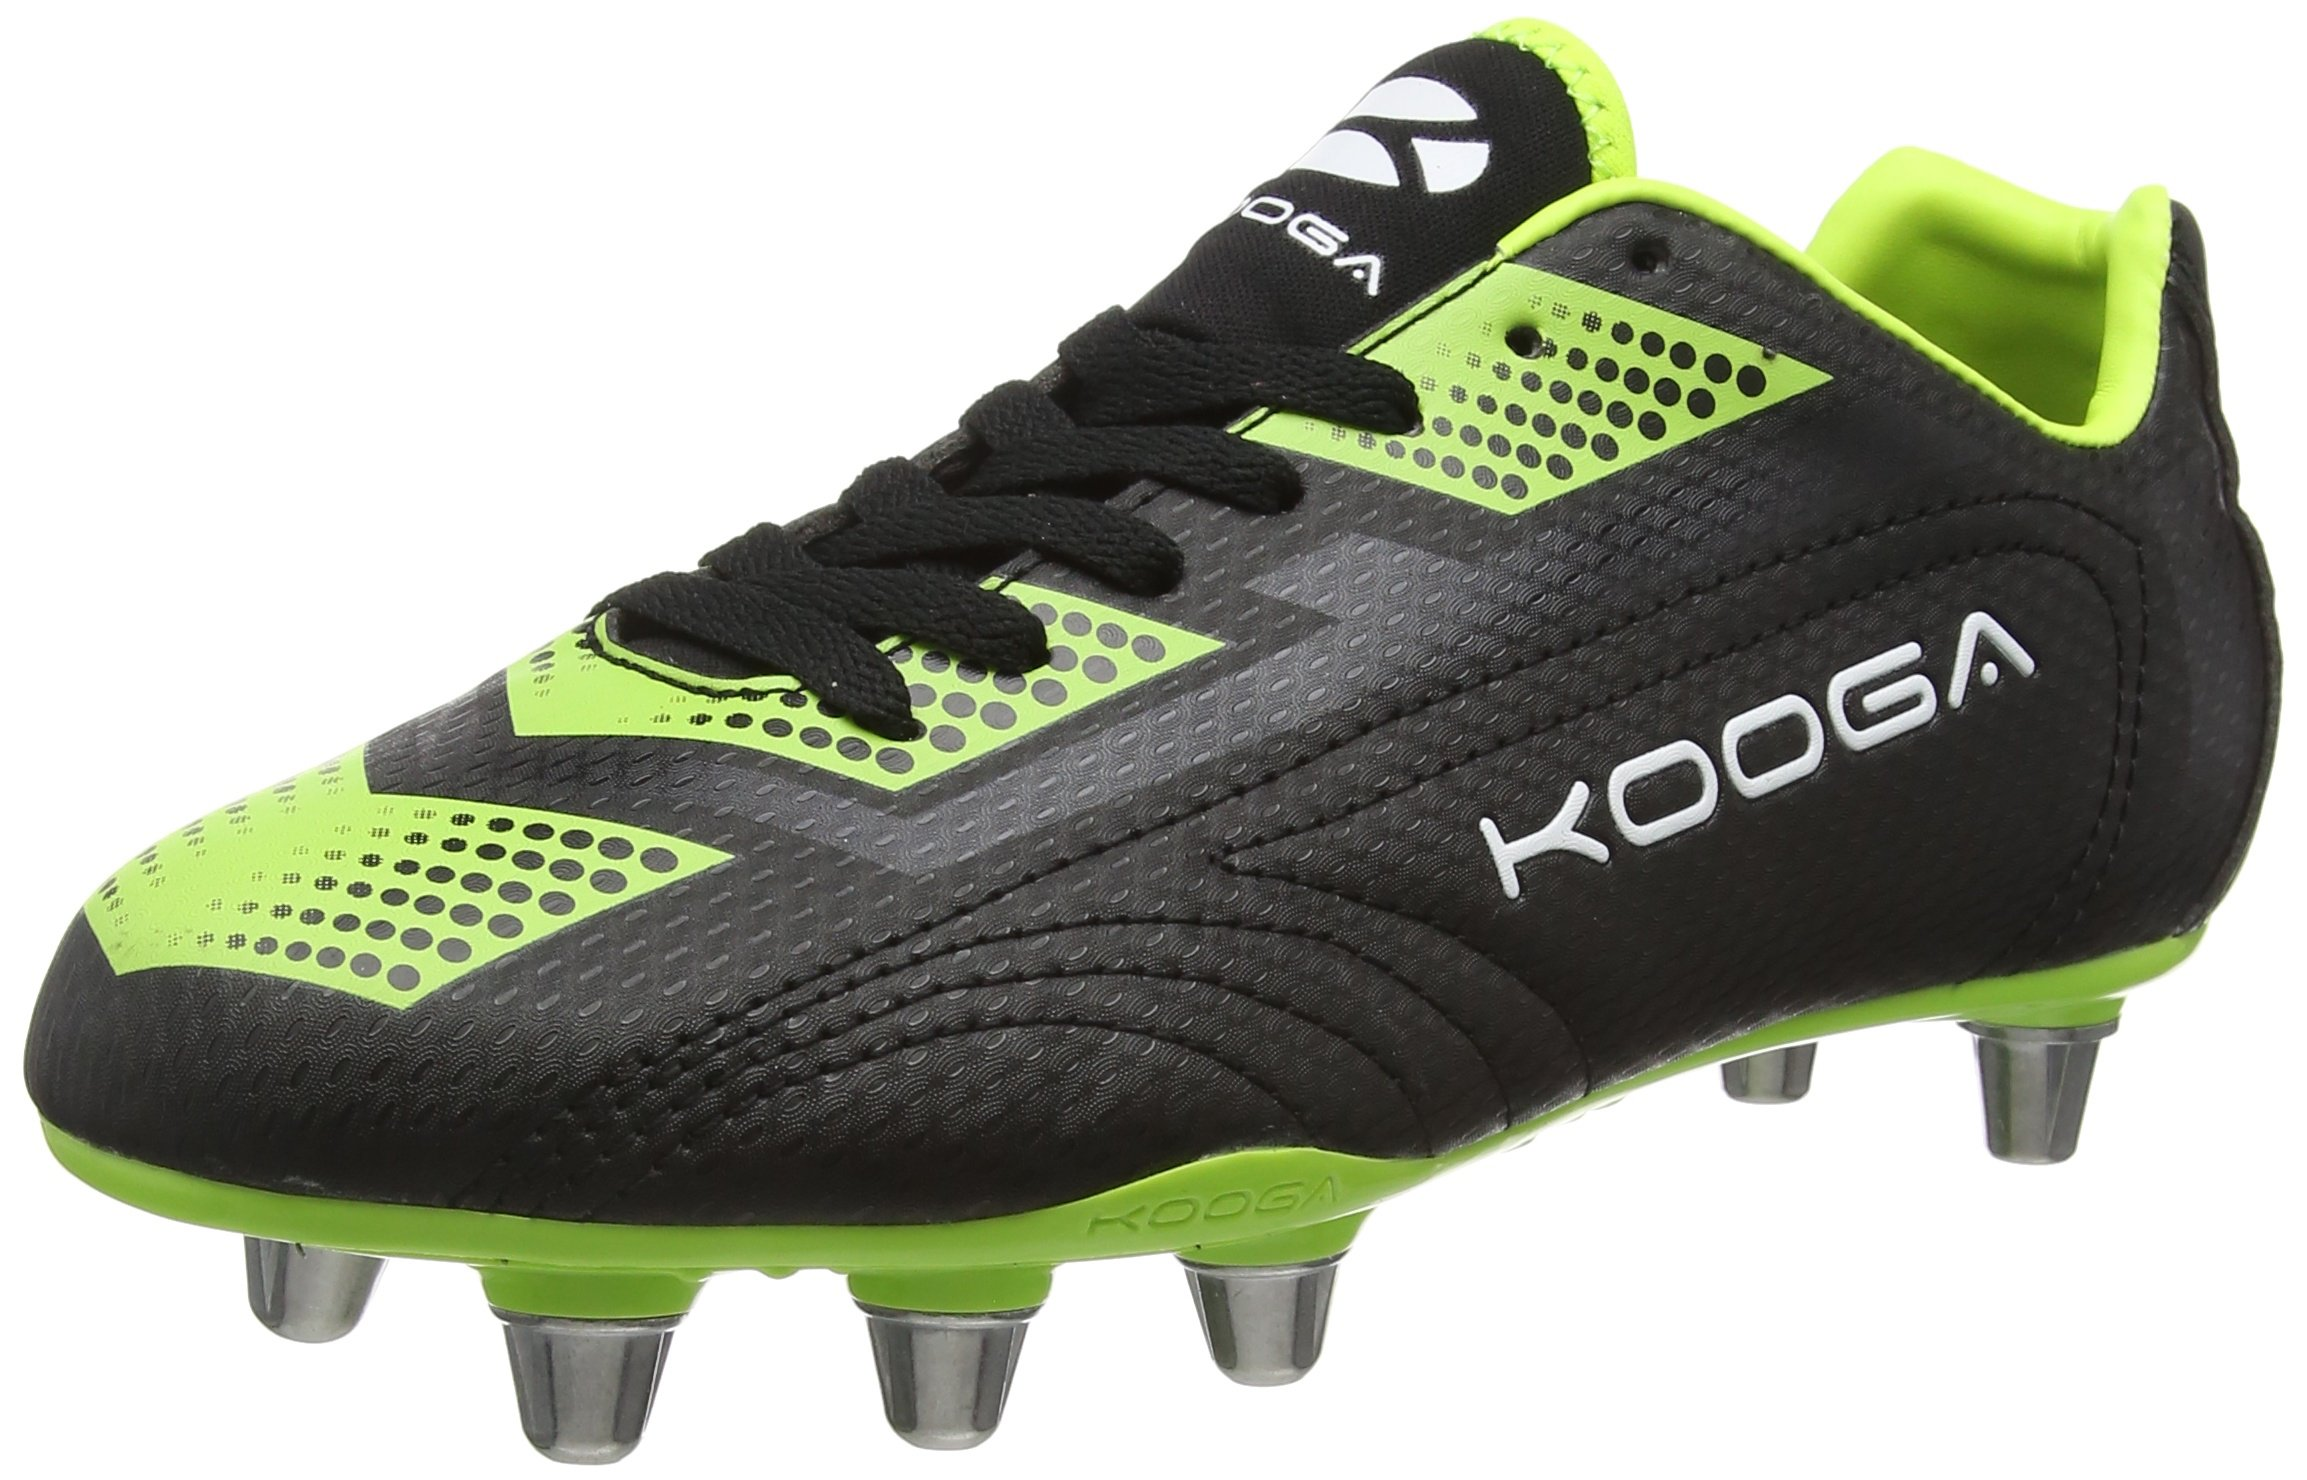 KooGa Blitz 2 Rugby Boots, Black/Red, US11